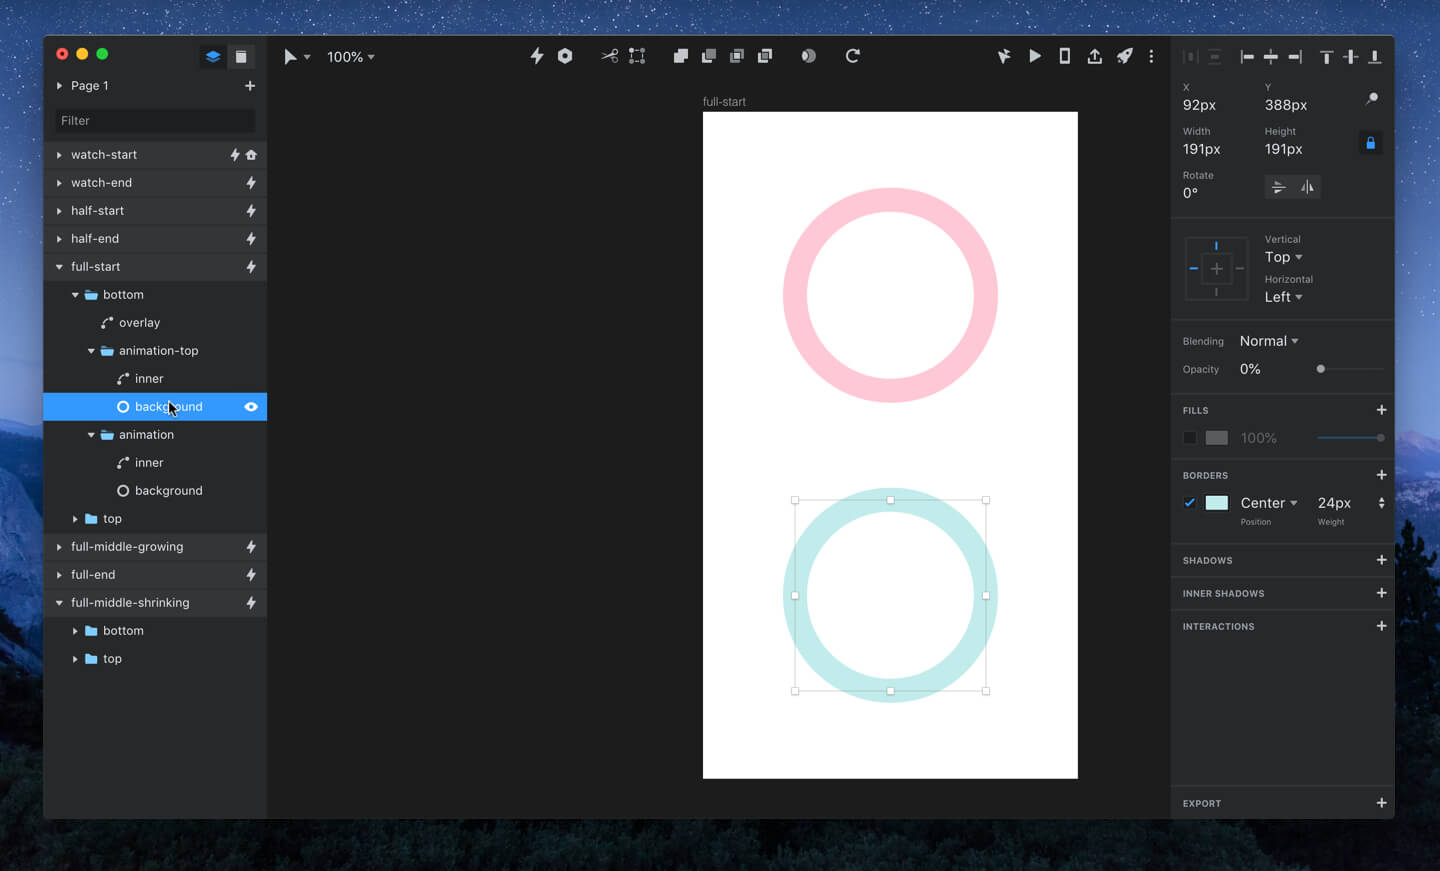 Layer setup and opacity of 'background' layer